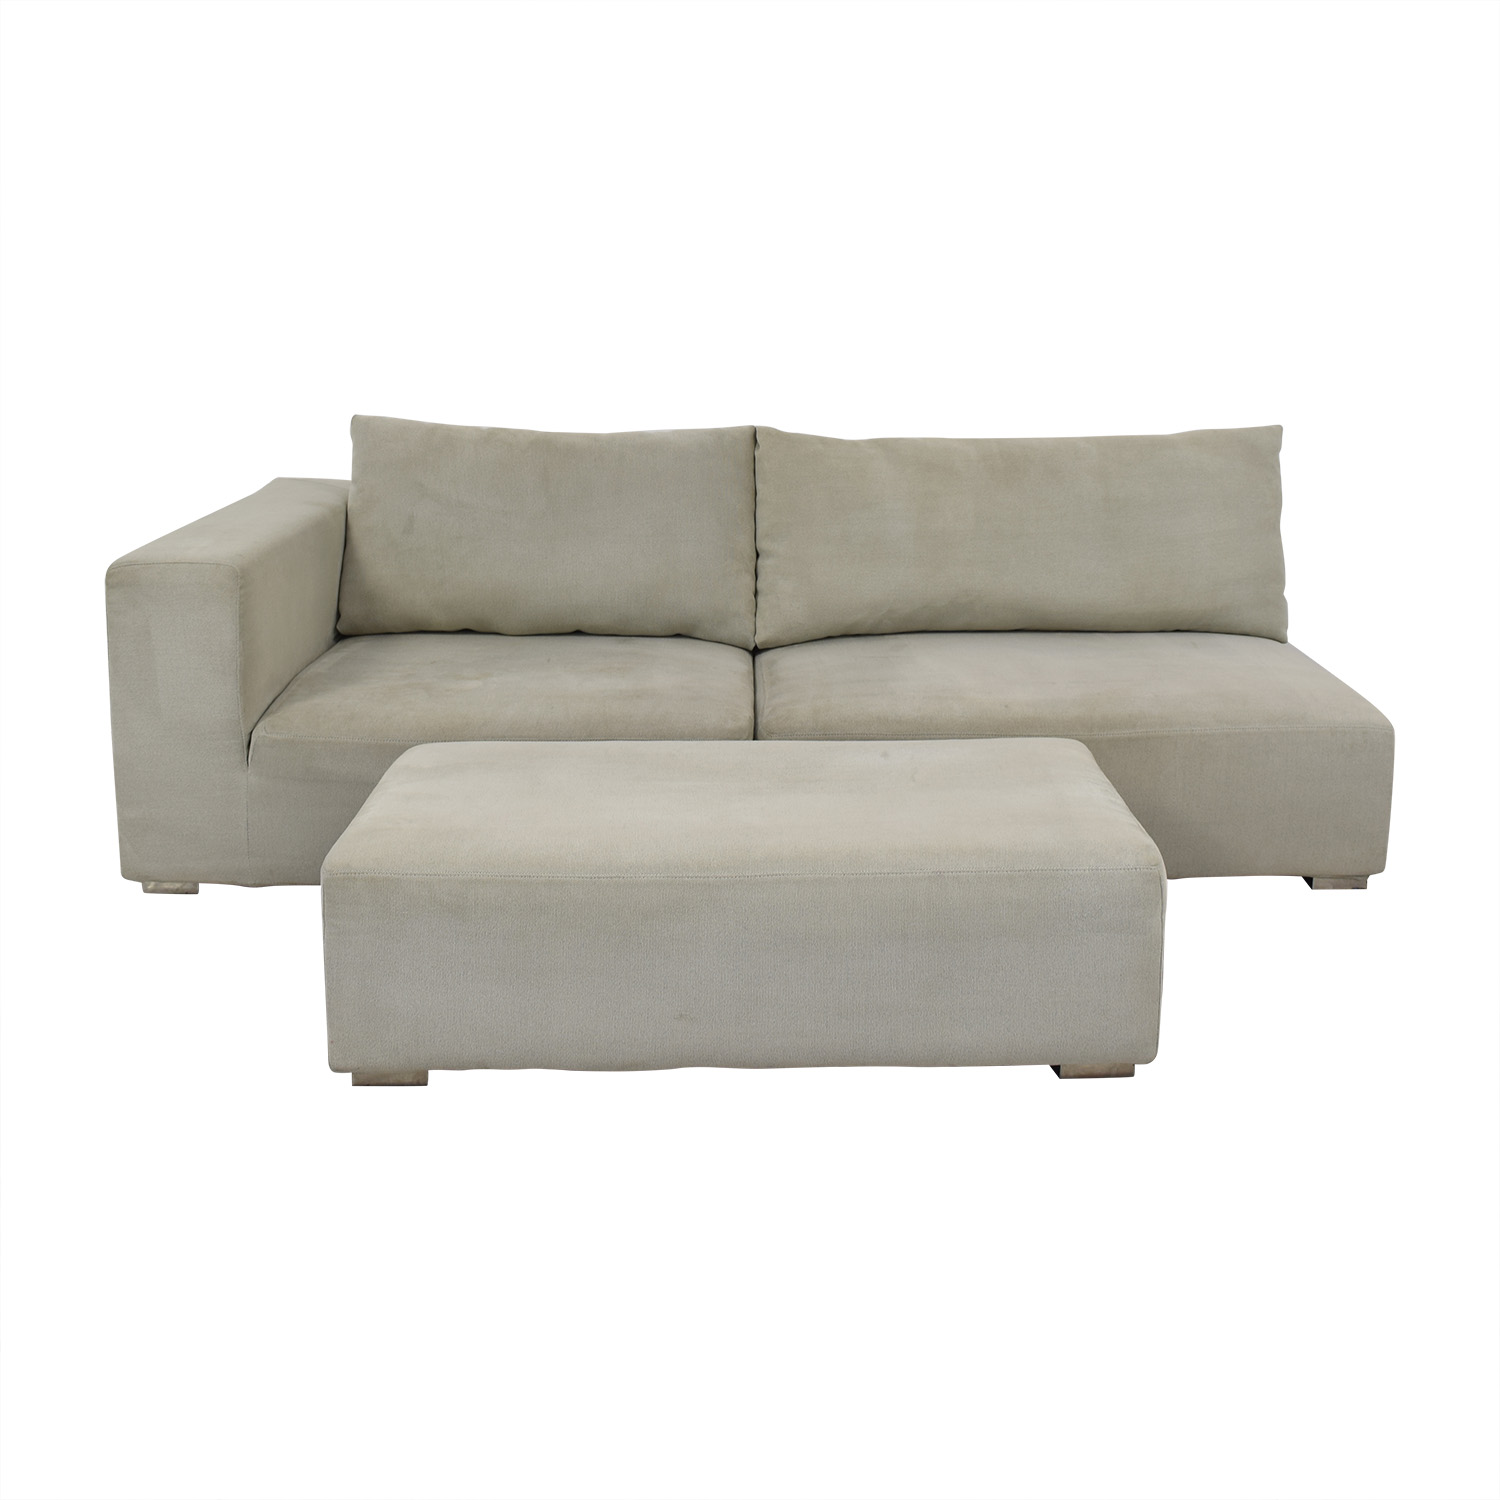 buy  Chaise Sofa with Ottoman online